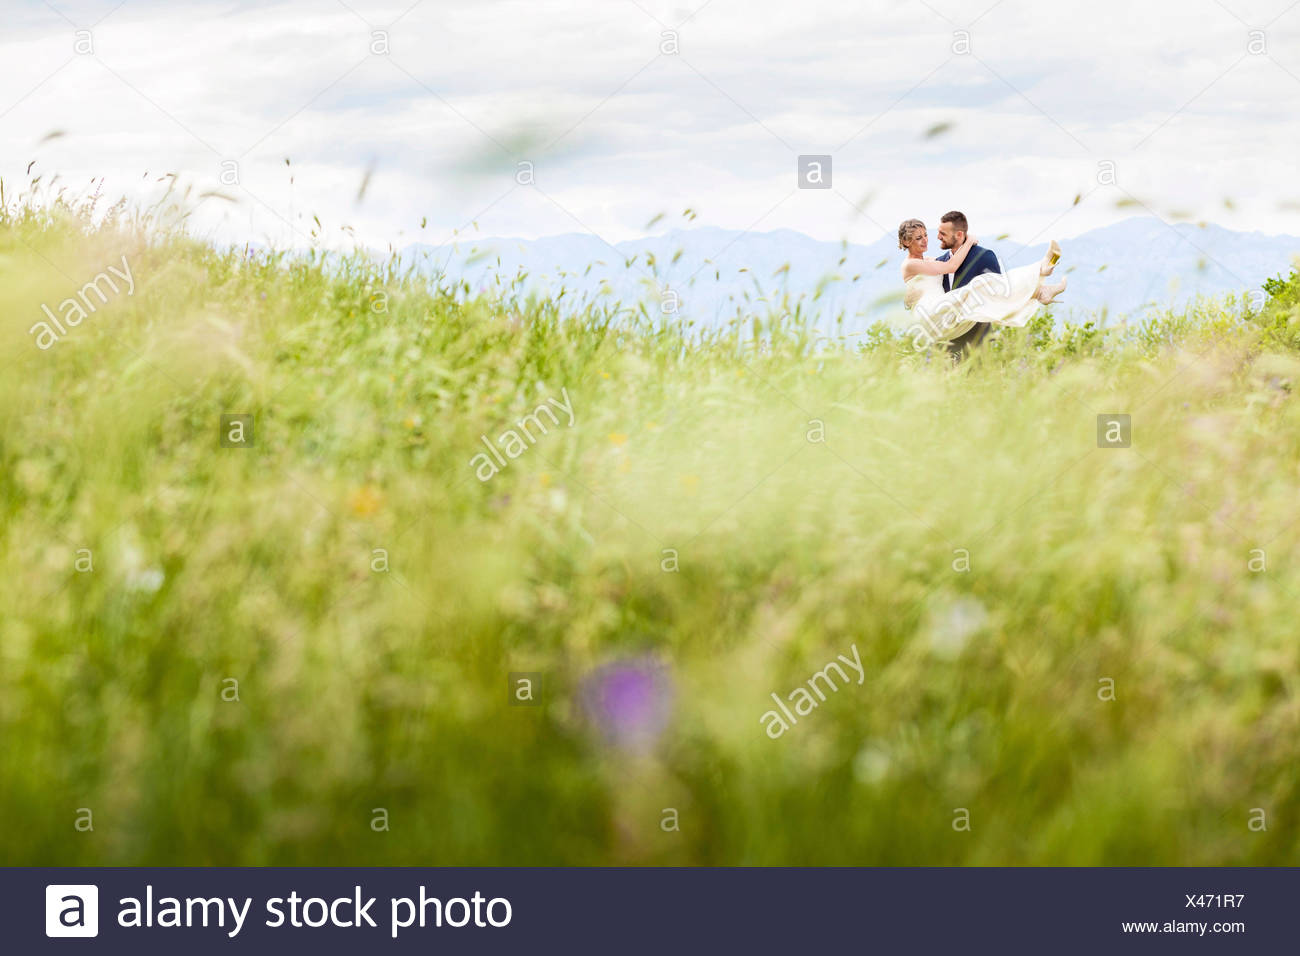 Groom carrying bride on meadow - Stock Image